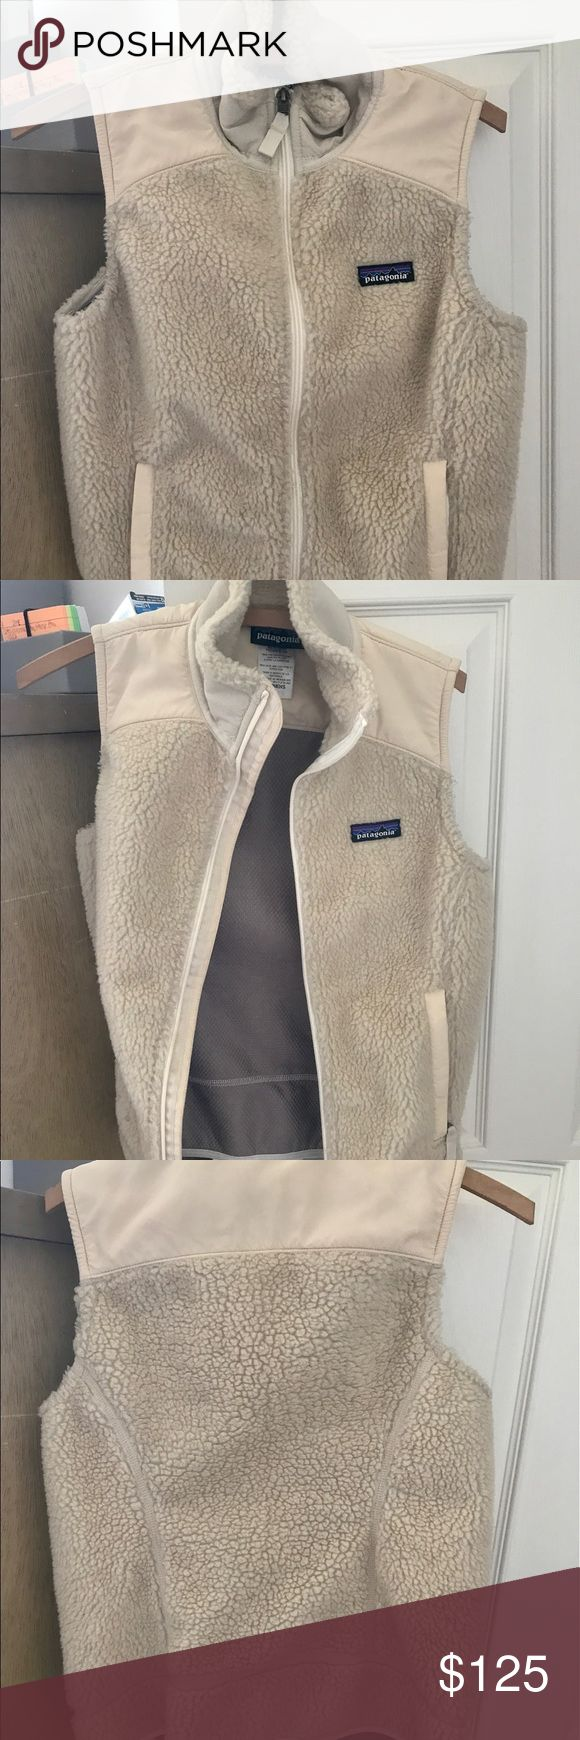 Patagonia Women's Retro X Vest size S Cute and comfortable white Patagonia retro x vest in women's S! Worn twice, perfect condition! Patagonia Jackets & Coats Vests